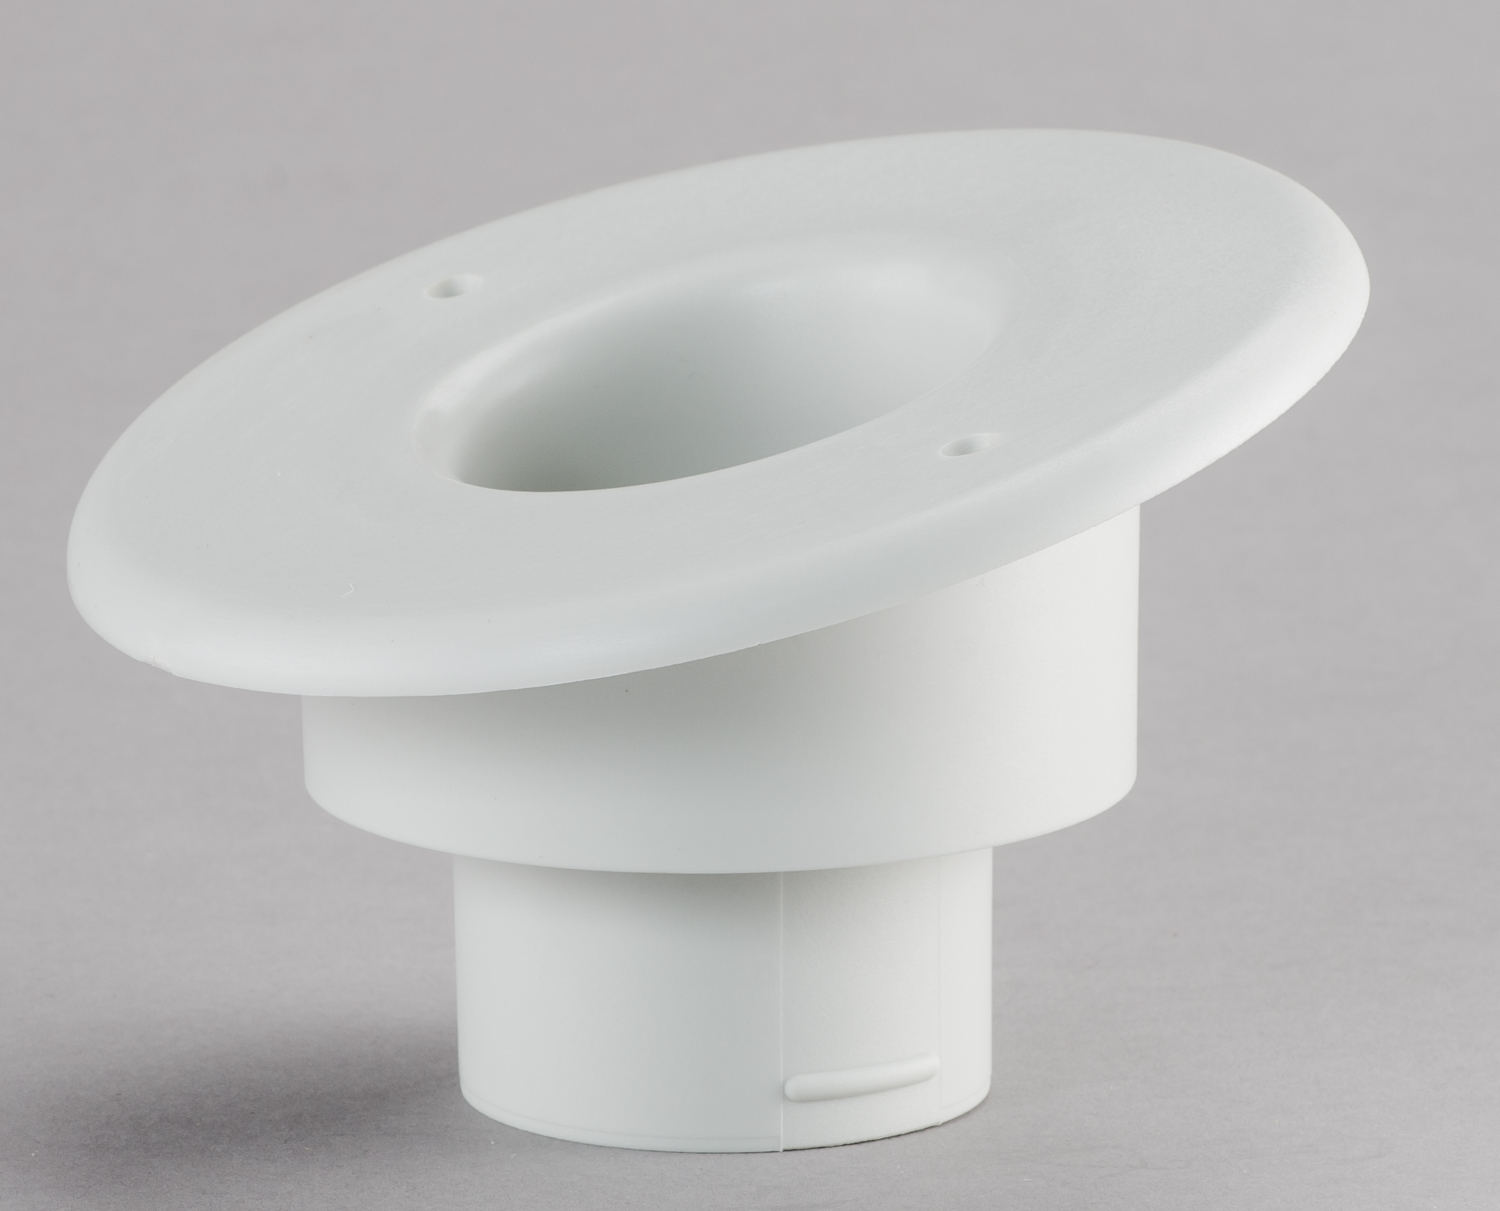 "Round Supply Outlet, 2"", White, 15° Sloped"